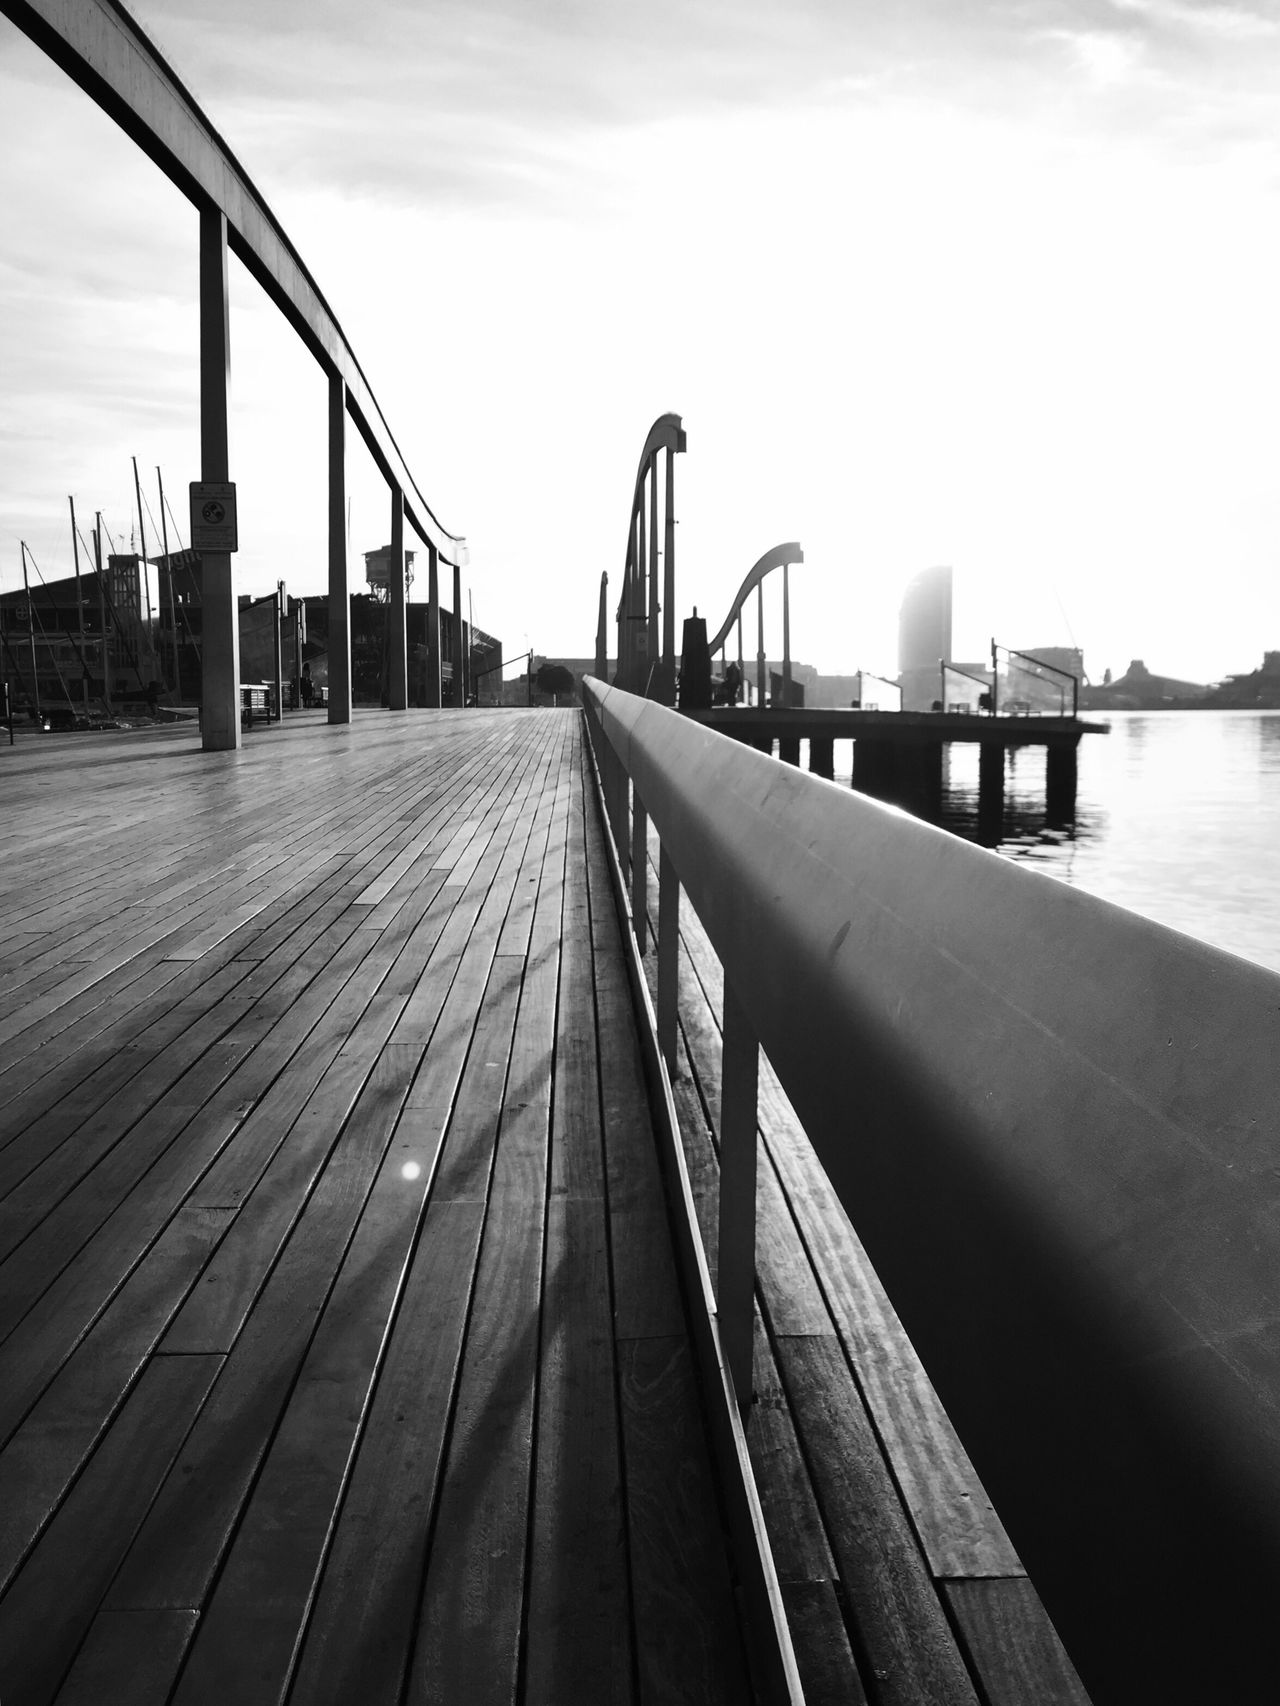 From My Point Of View Bnw_collection Boardwalk Railing Outdoors Sky Day Built Structure No People Water Architecture Streetphotography EyeEm Gallery Bnw_captures Barcelona Blackandwhite Blackandwhite Photography